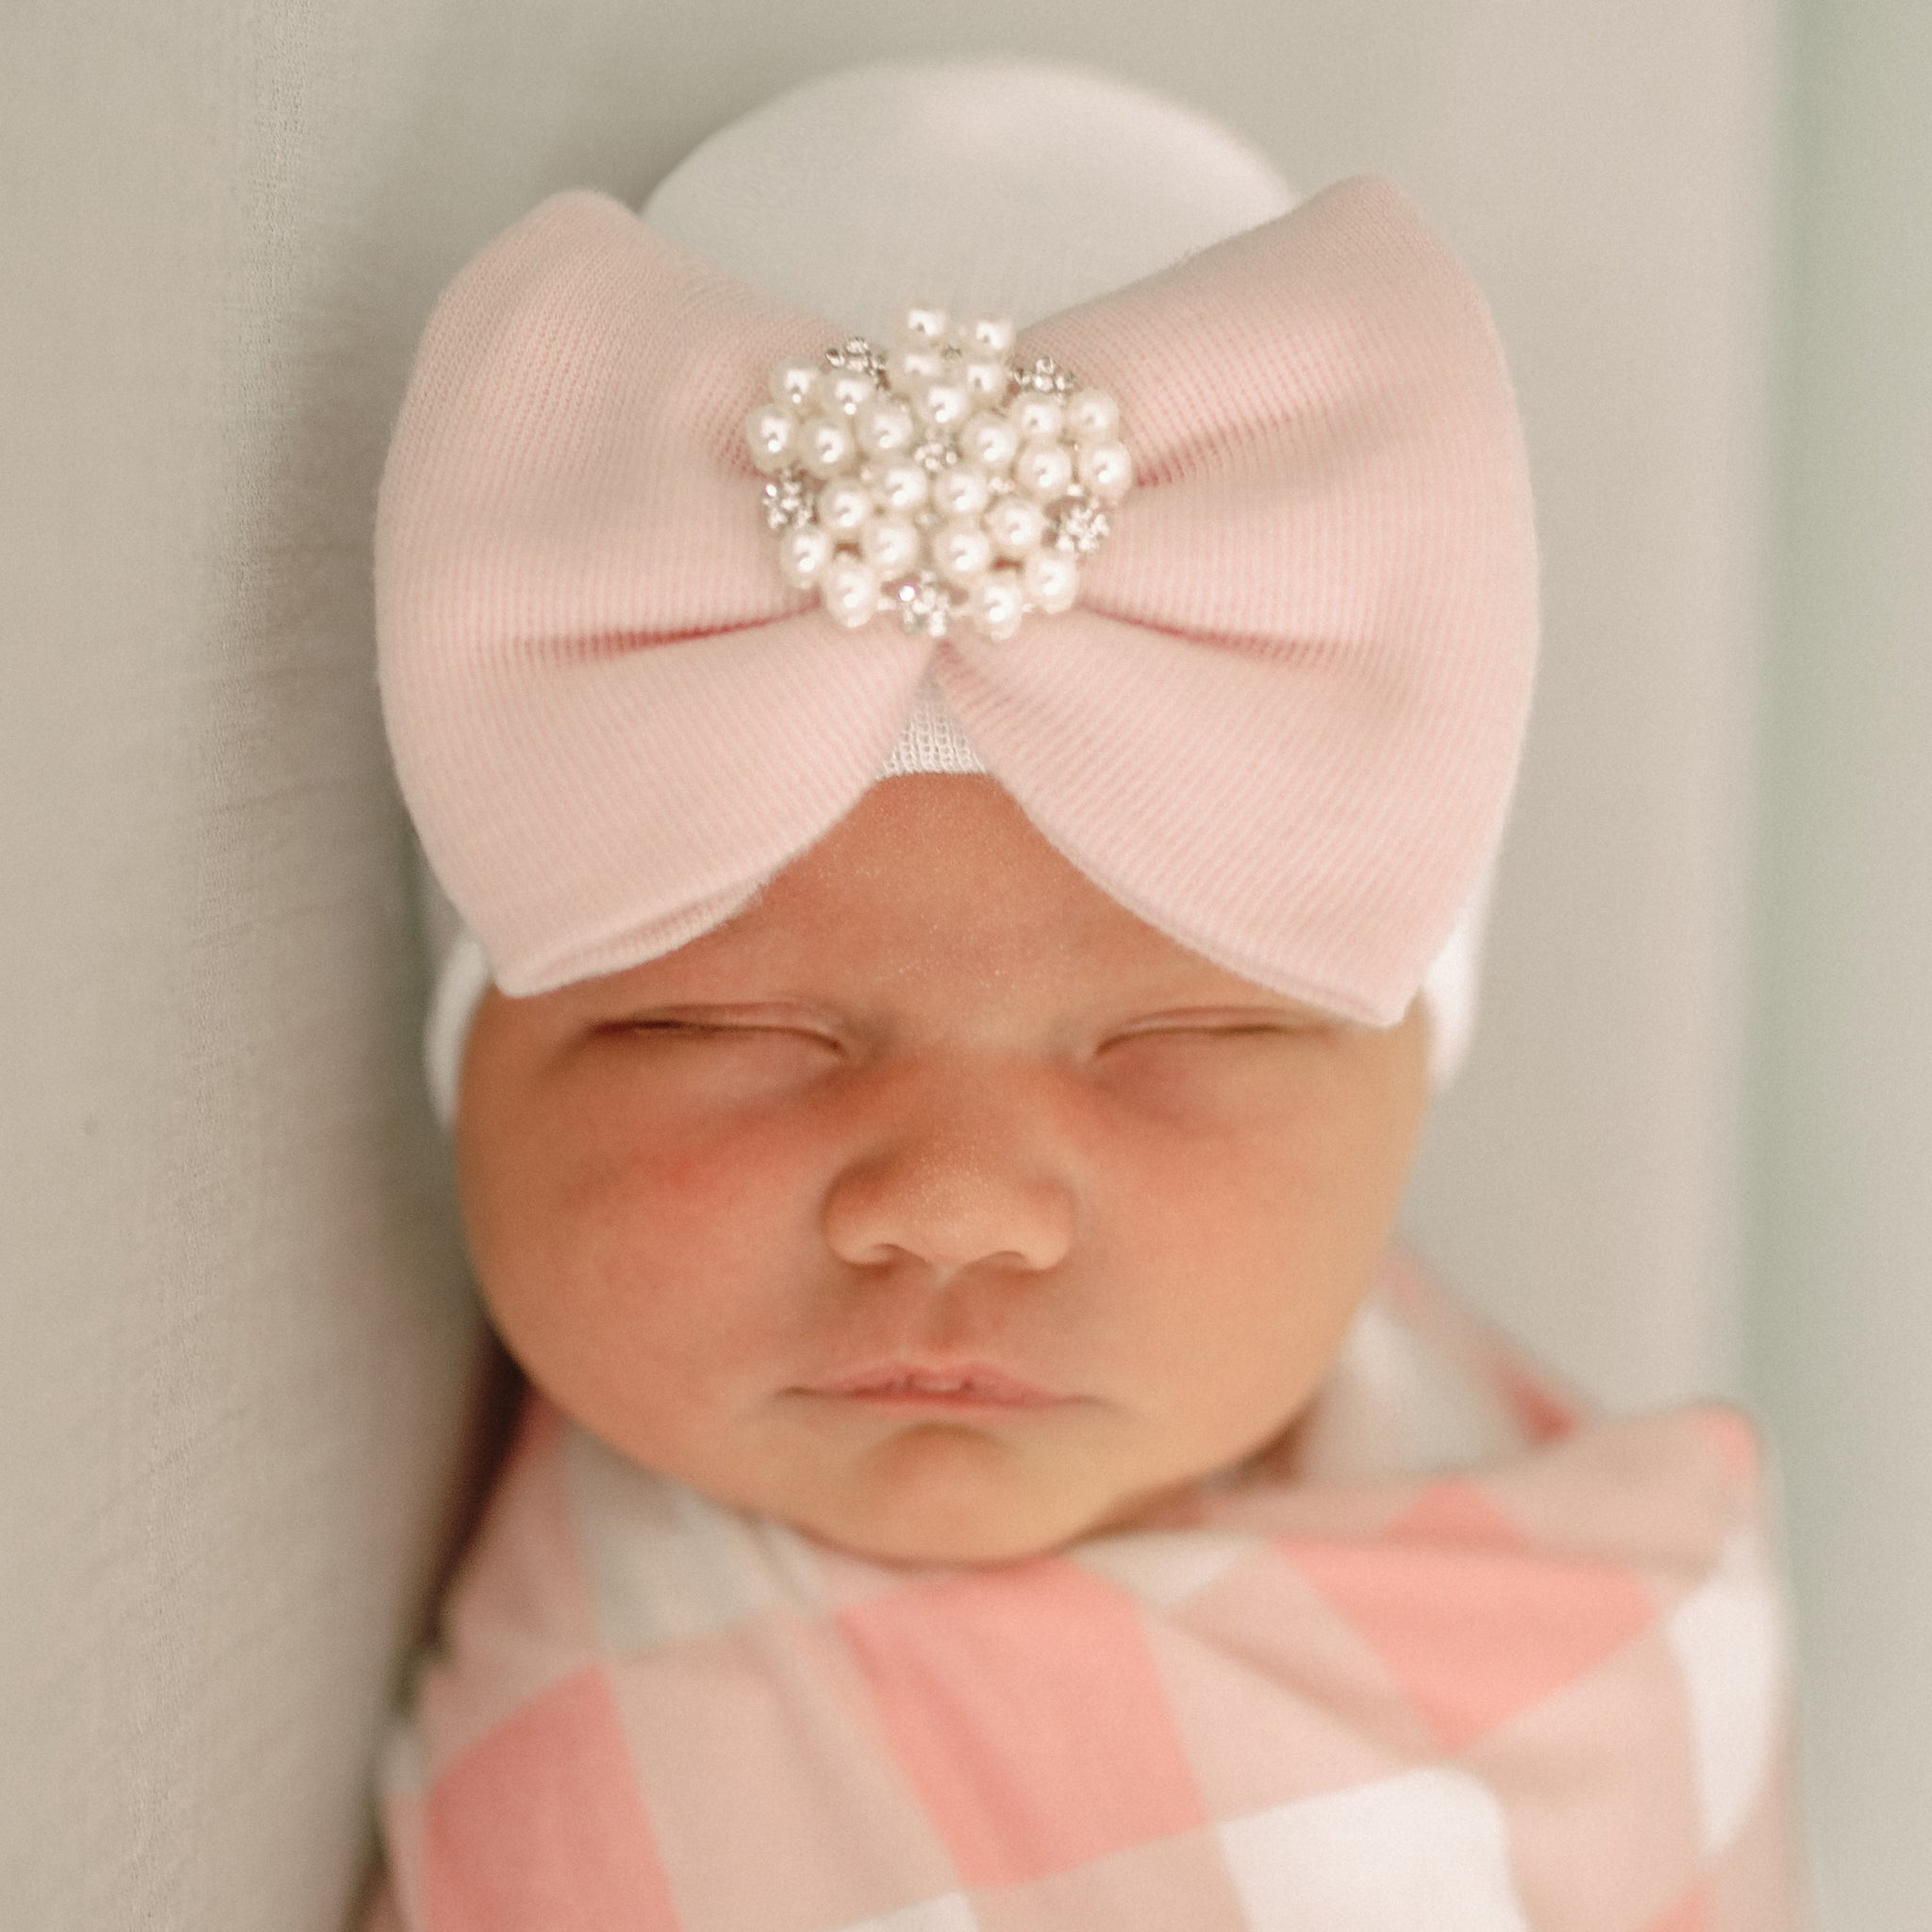 ilybean Irene Newborn Girl Hospital Hat with Pearl and Rhinestone Jewel at Center